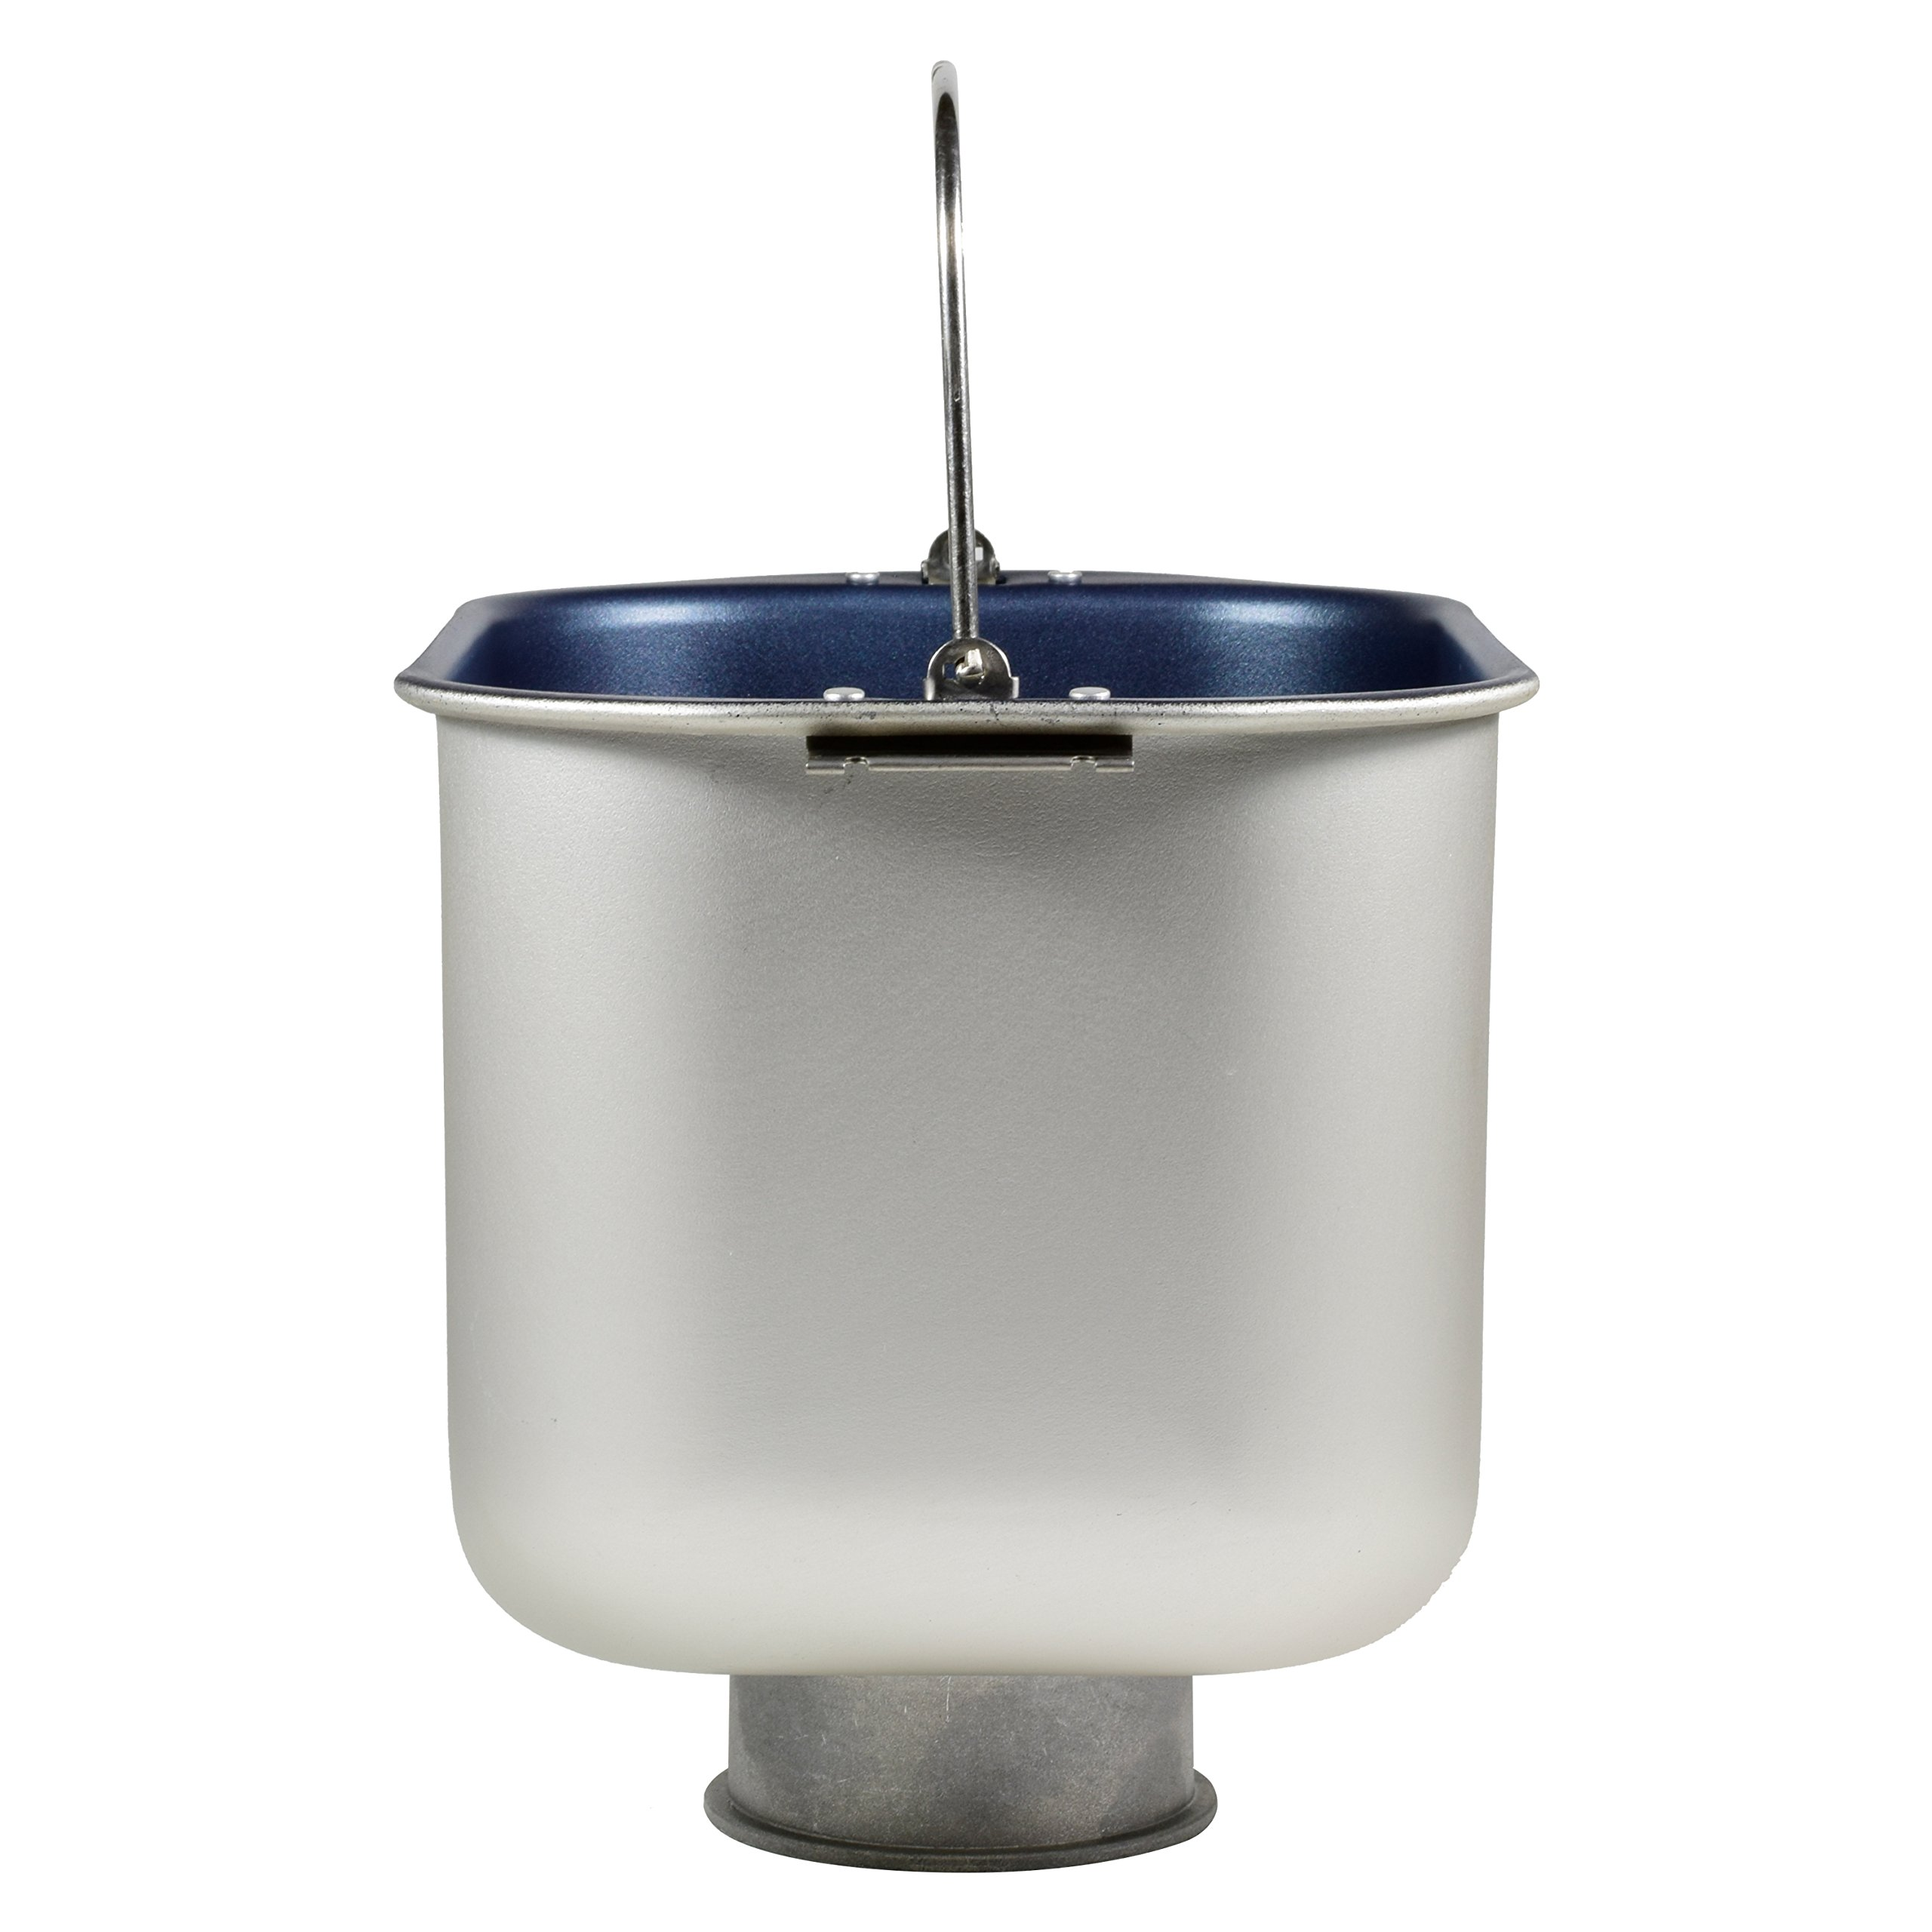 Univen (102529-000-000) Breadmaker Bread Pan Replaces Sunbeam Oster by Univen (Image #2)